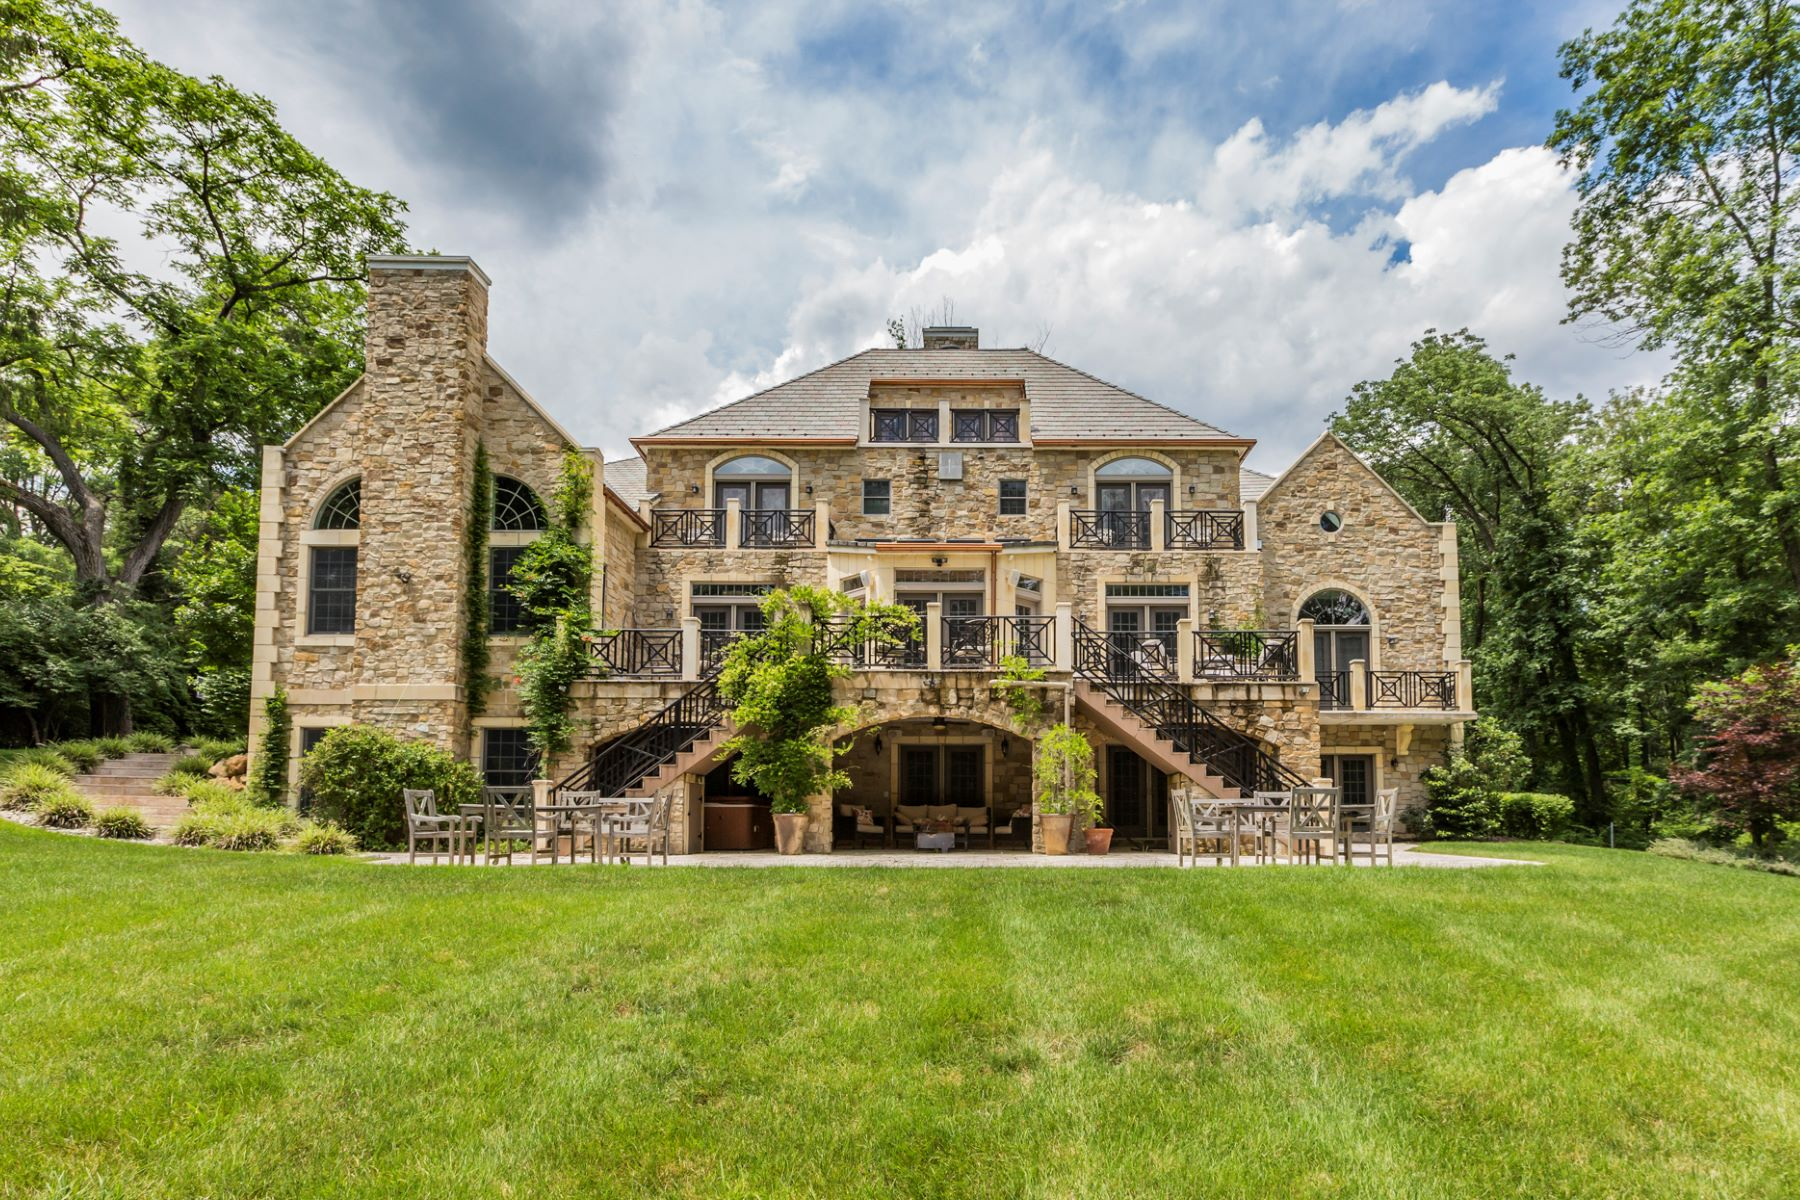 Single Family Homes for Sale at Classic Princeton Estate on Three Acres 218 Drakes Corner Road, Princeton, New Jersey 08540 United States